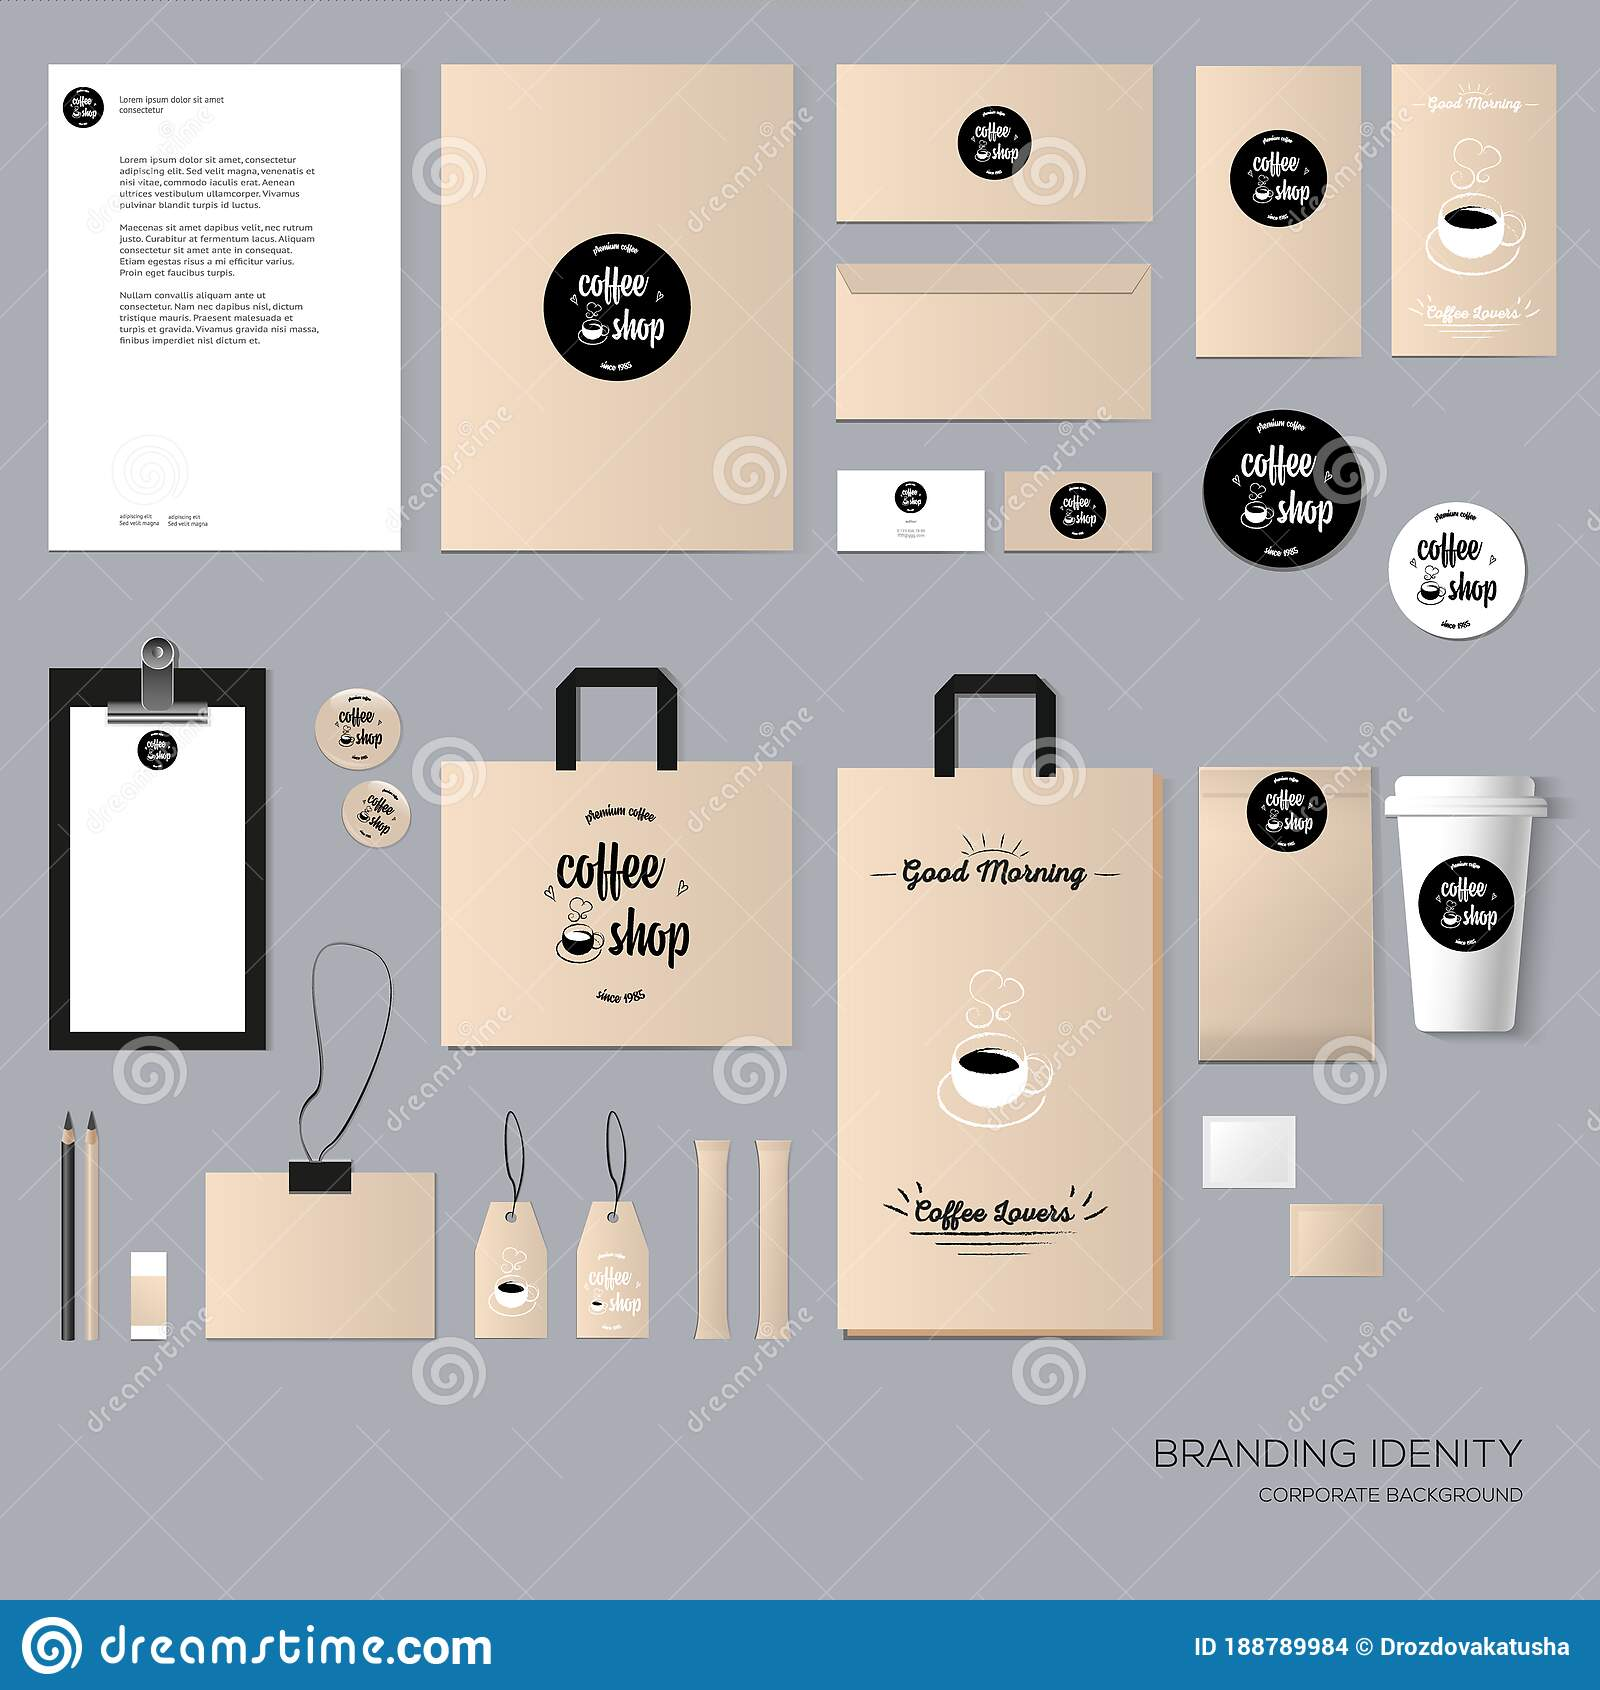 Stationery Template Design With Coffee House Elements With Blank Name Card Envelope Paper Bag Etc Stock Vector Illustration Of Brochure Menu 188789984